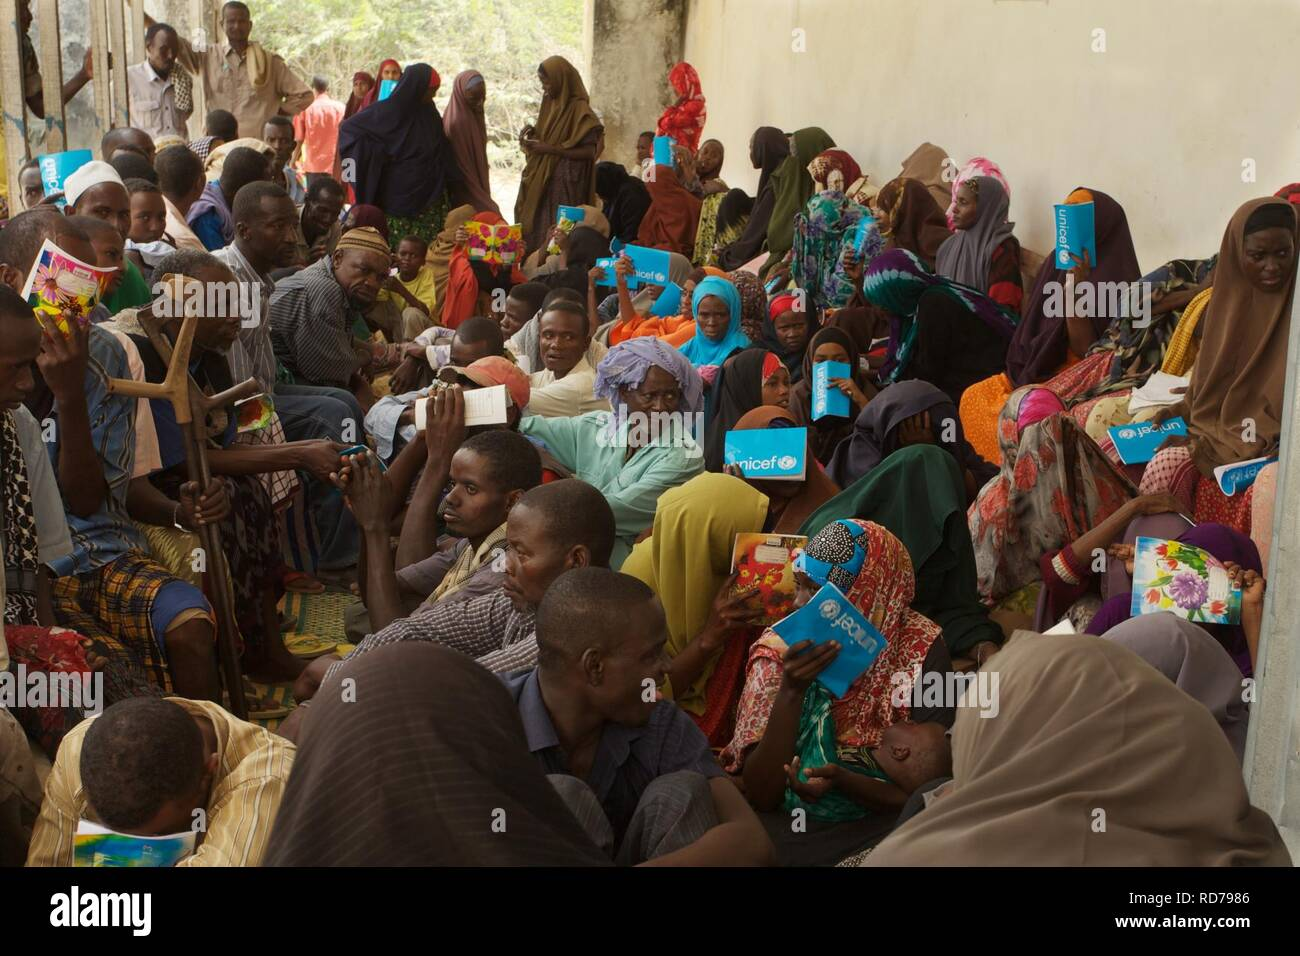 AMISOM Outpatients Department (6246185009). - Stock Image